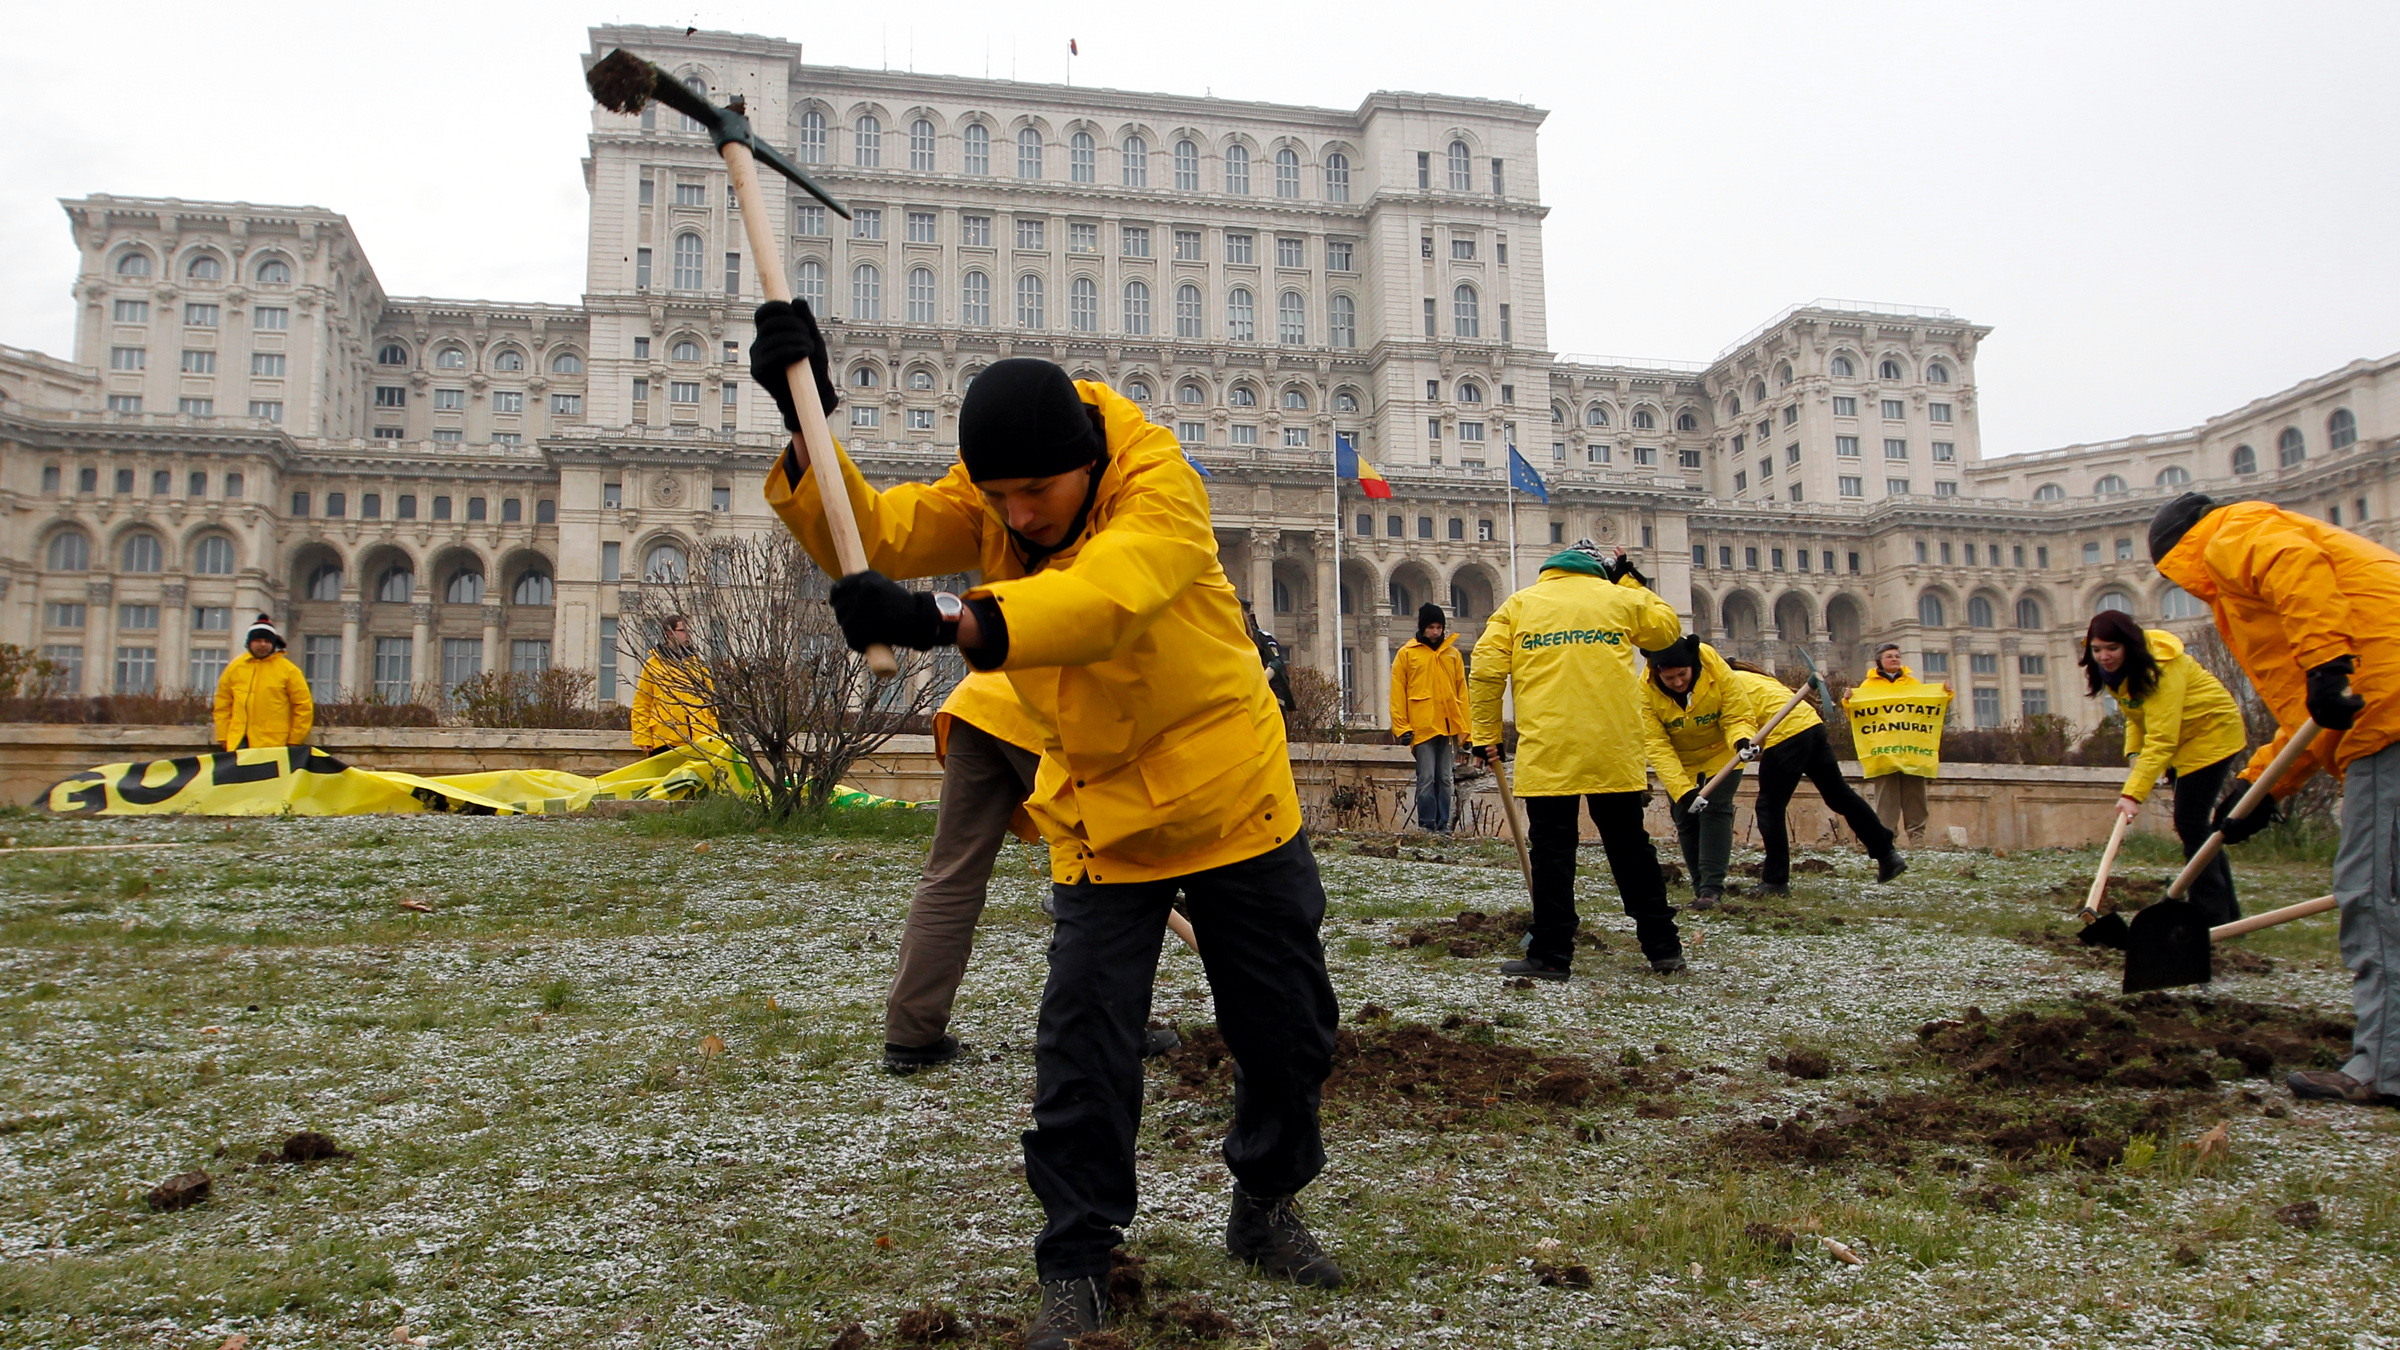 Greenpeace activists dig into the yard of Romania's Parliament, to protest against a Canadian company's plan to set up Europe's biggest open-cast gold mine in Romania, in Bucharest December 9, 2013. A special Romanian parliament commission overwhelmingly rejected a draft bill that would have allowed Canada's Gabriel Resources to set up Europe's biggest open-cast gold mine in the small Carpathian town of Rosia Montana last month. However, parliament plans to revise a mining law that could open way for the project.